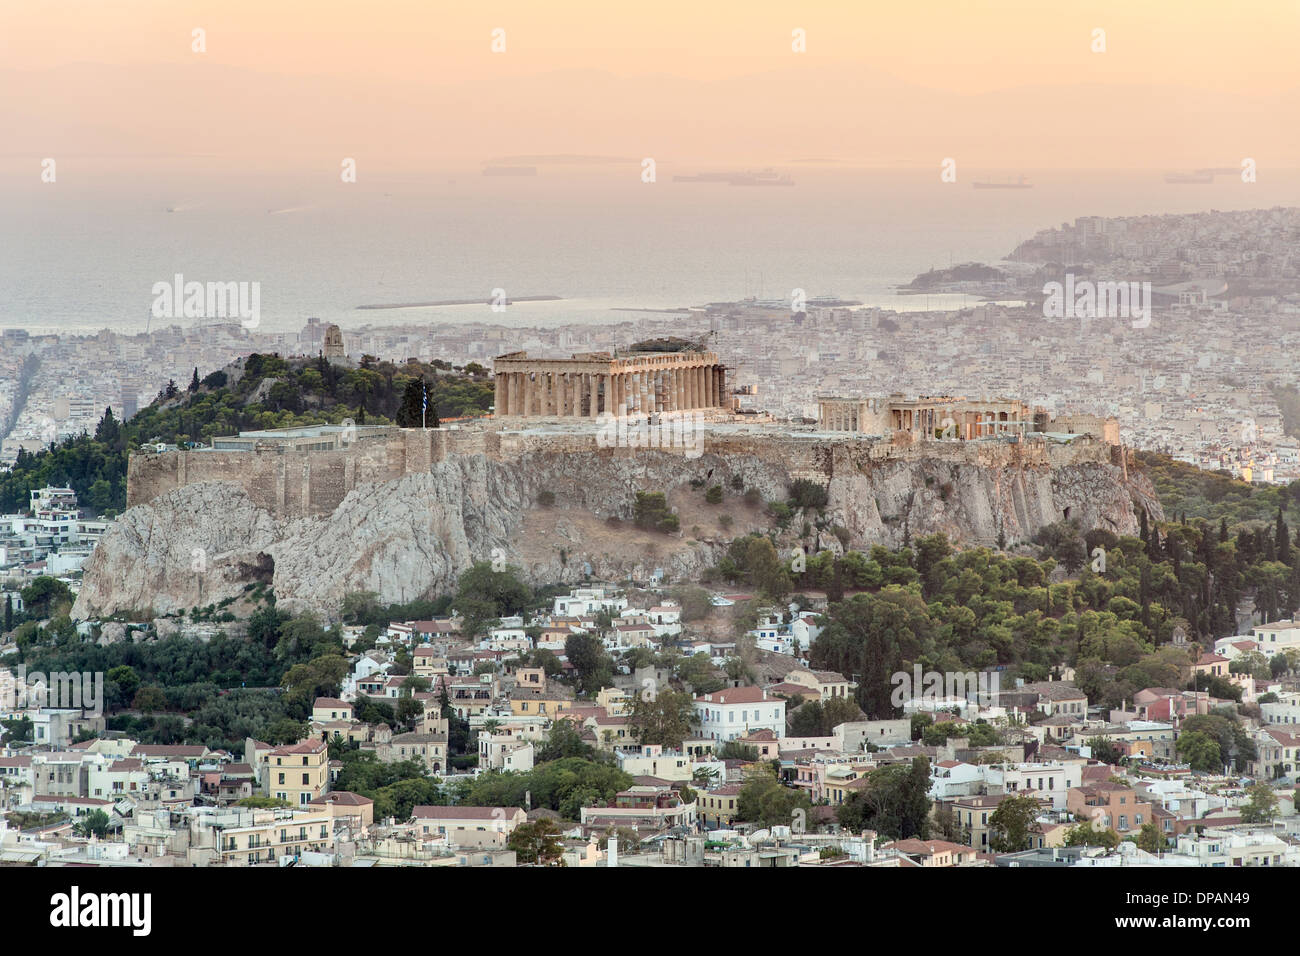 View of the Parthenon and Acropolis Hill in Athens, the capital of Greece. - Stock Image